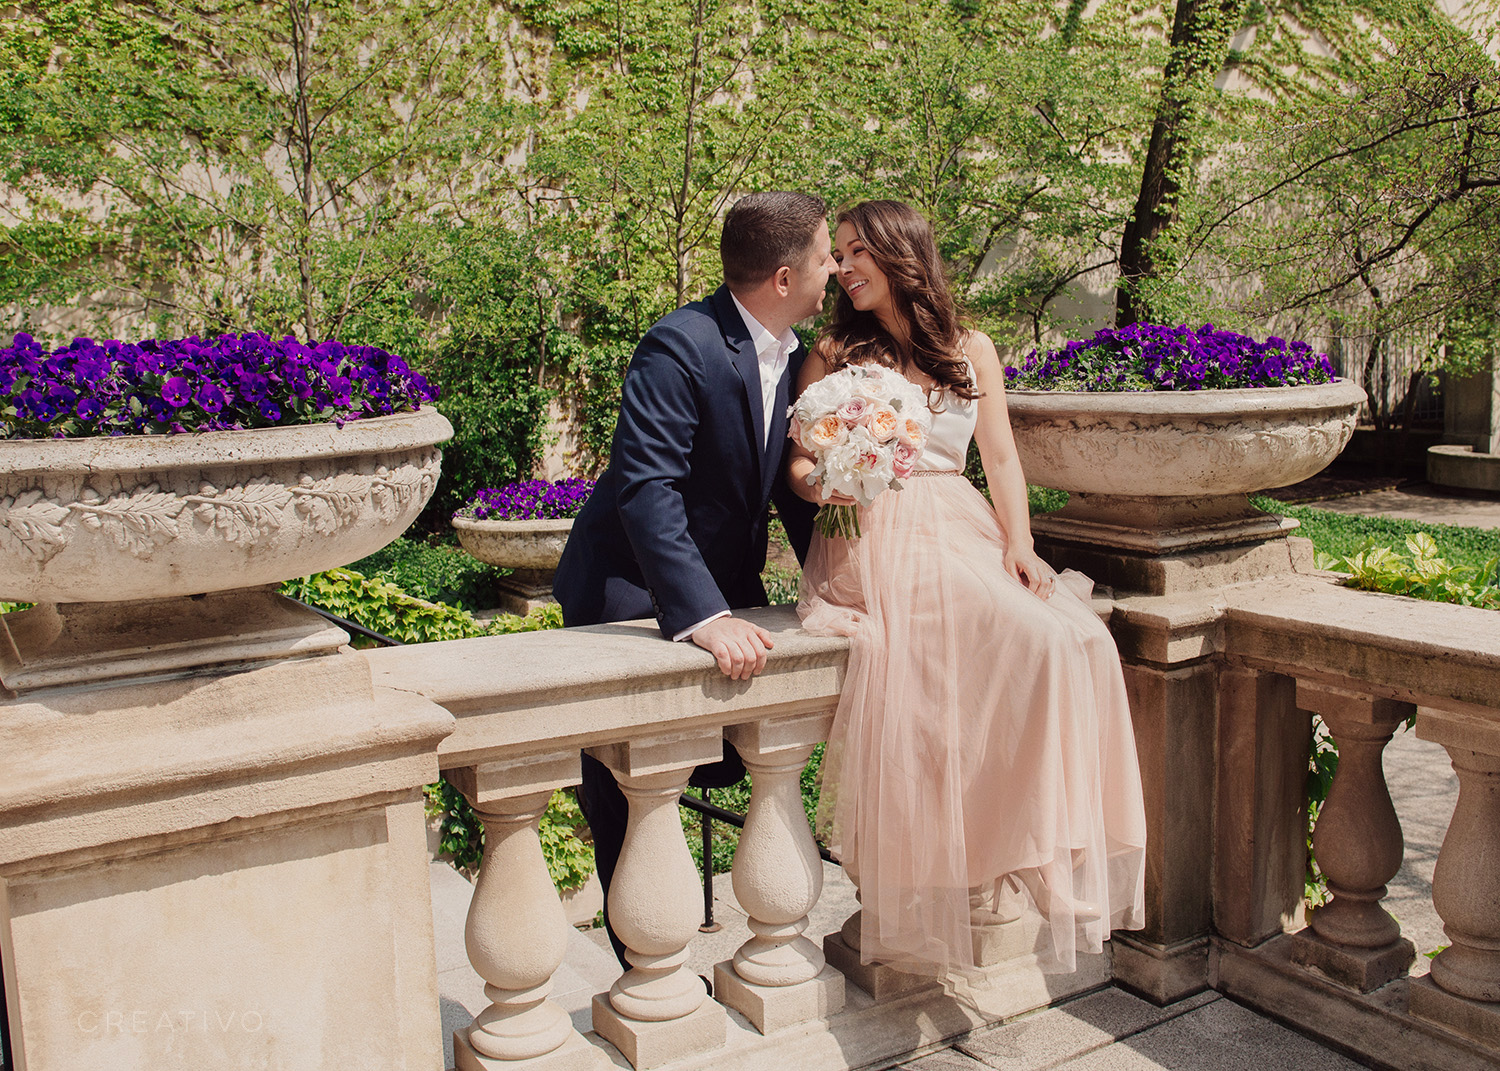 18. Landscaped garden elopement in Chicago, designed by an iconic landscape architect